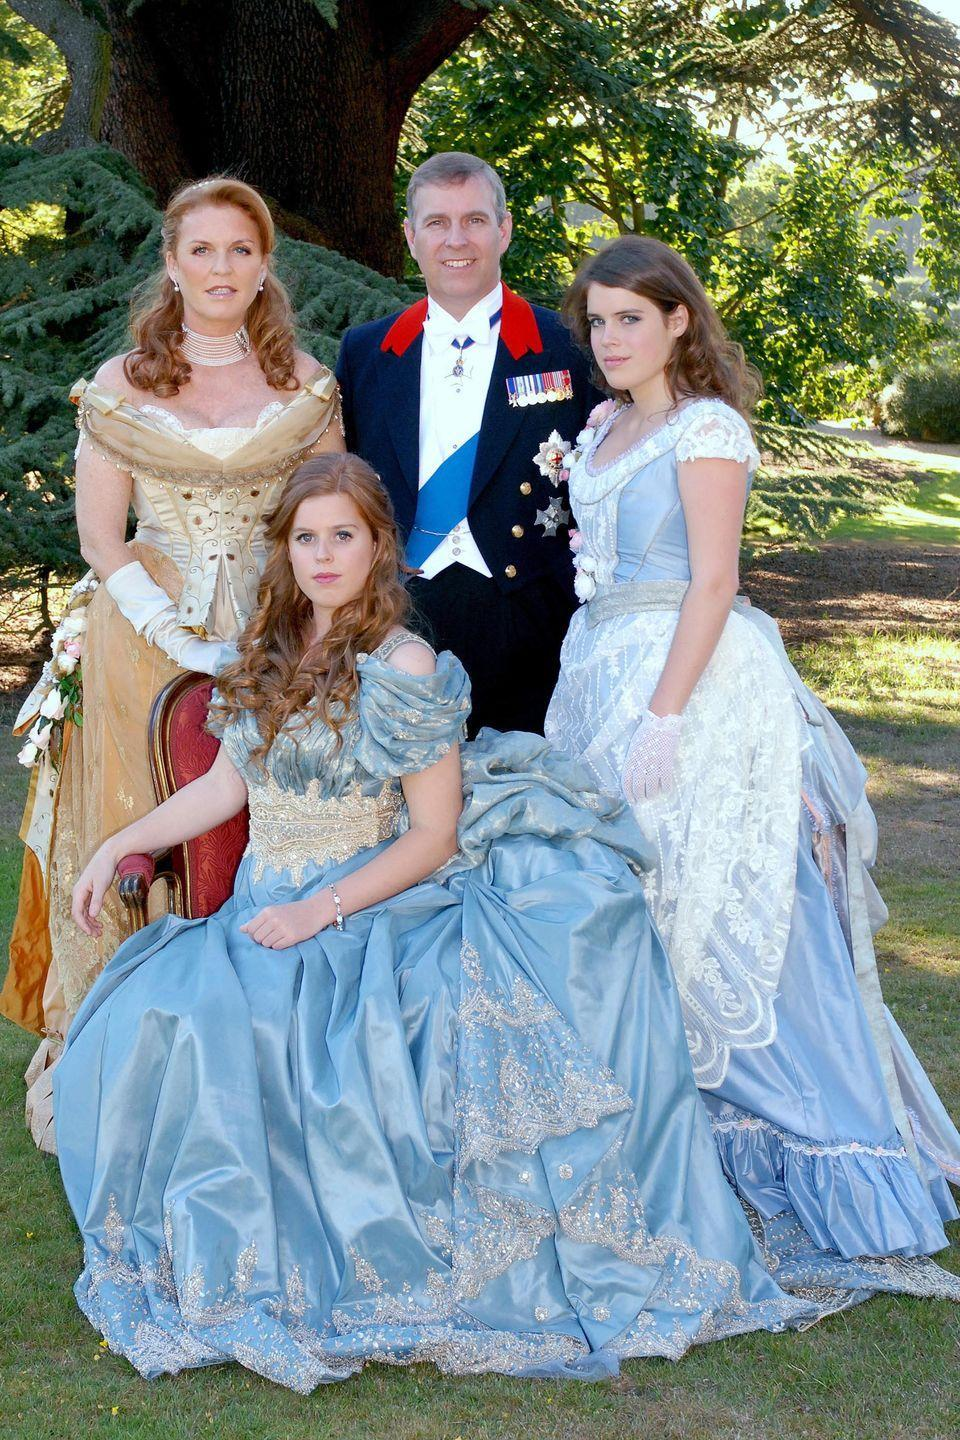 <p>Sarah Ferguson, Prince Andrew, Princess Beatrice, and Princess Eugenie dressed in Disney-inspired prince and princess costumes. </p>